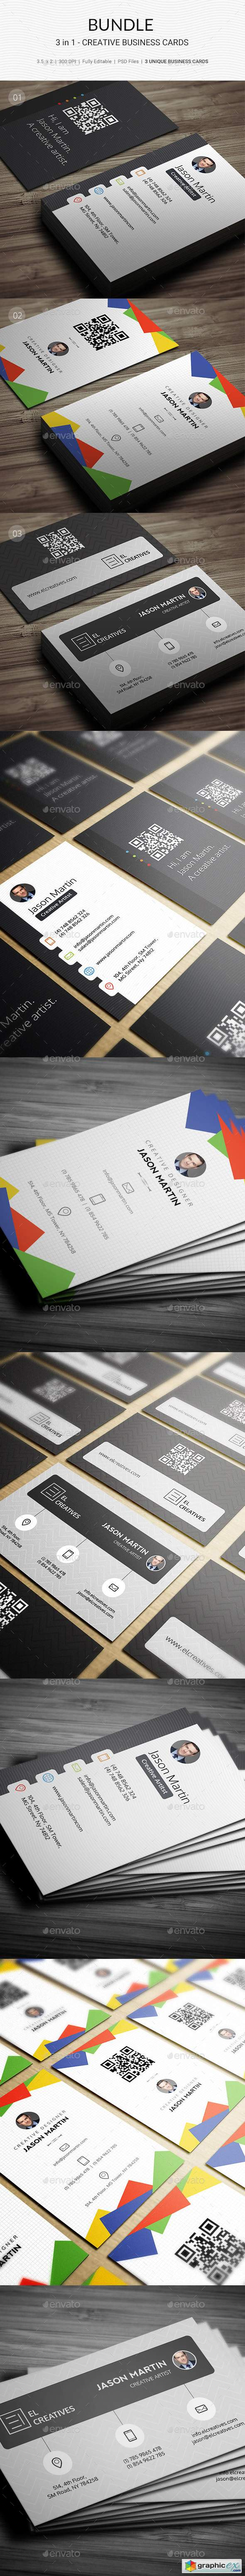 Bundle - 3 in 1 - Prime Business Cards - 179